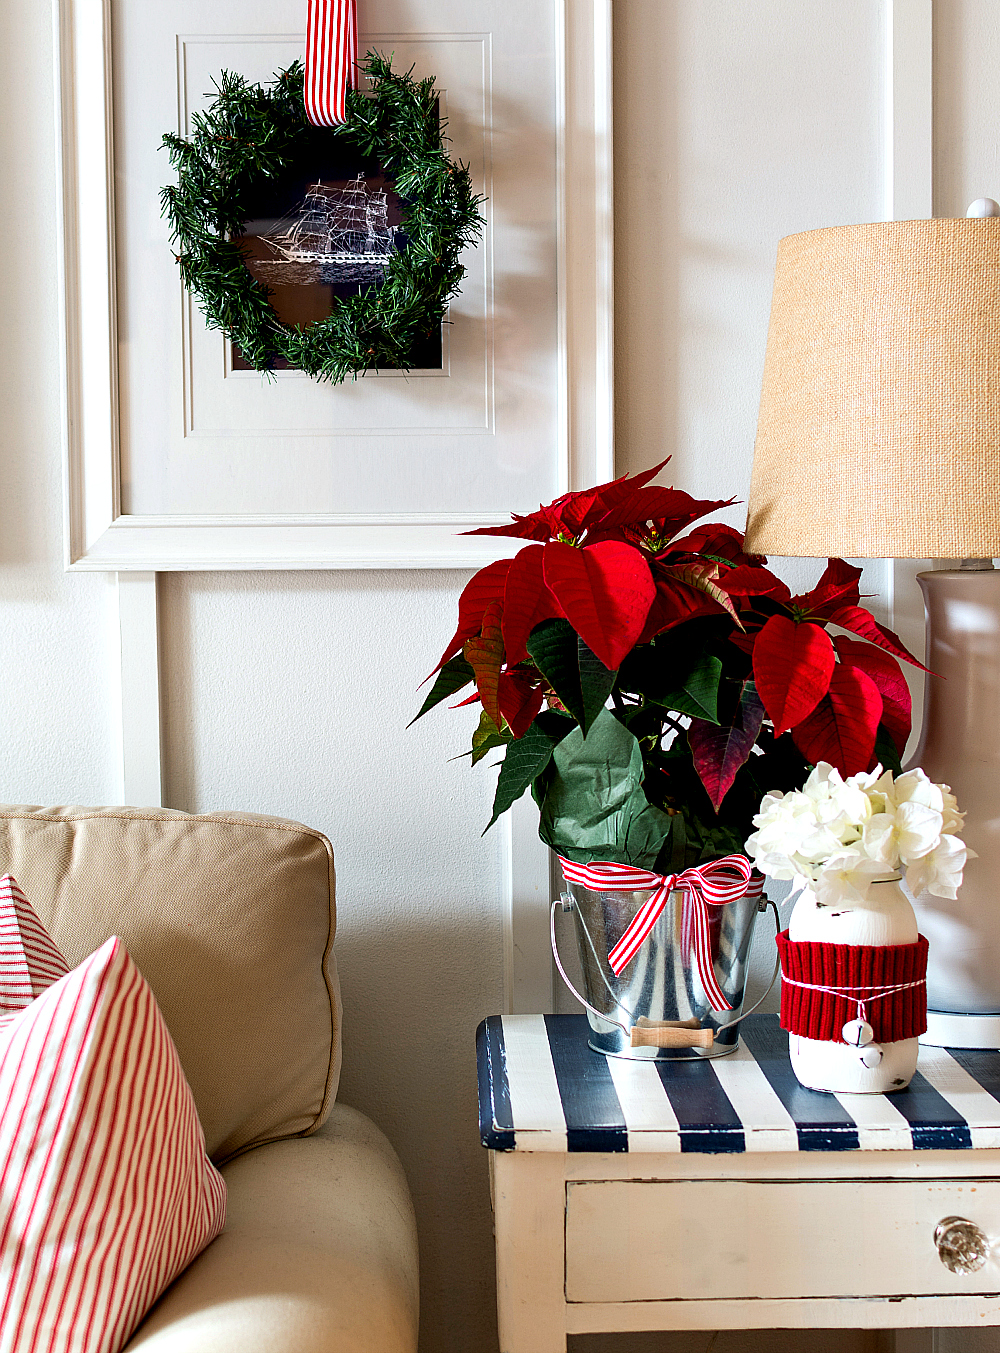 Christmas-Red-White-Decorating-Ideas (47 of 47)